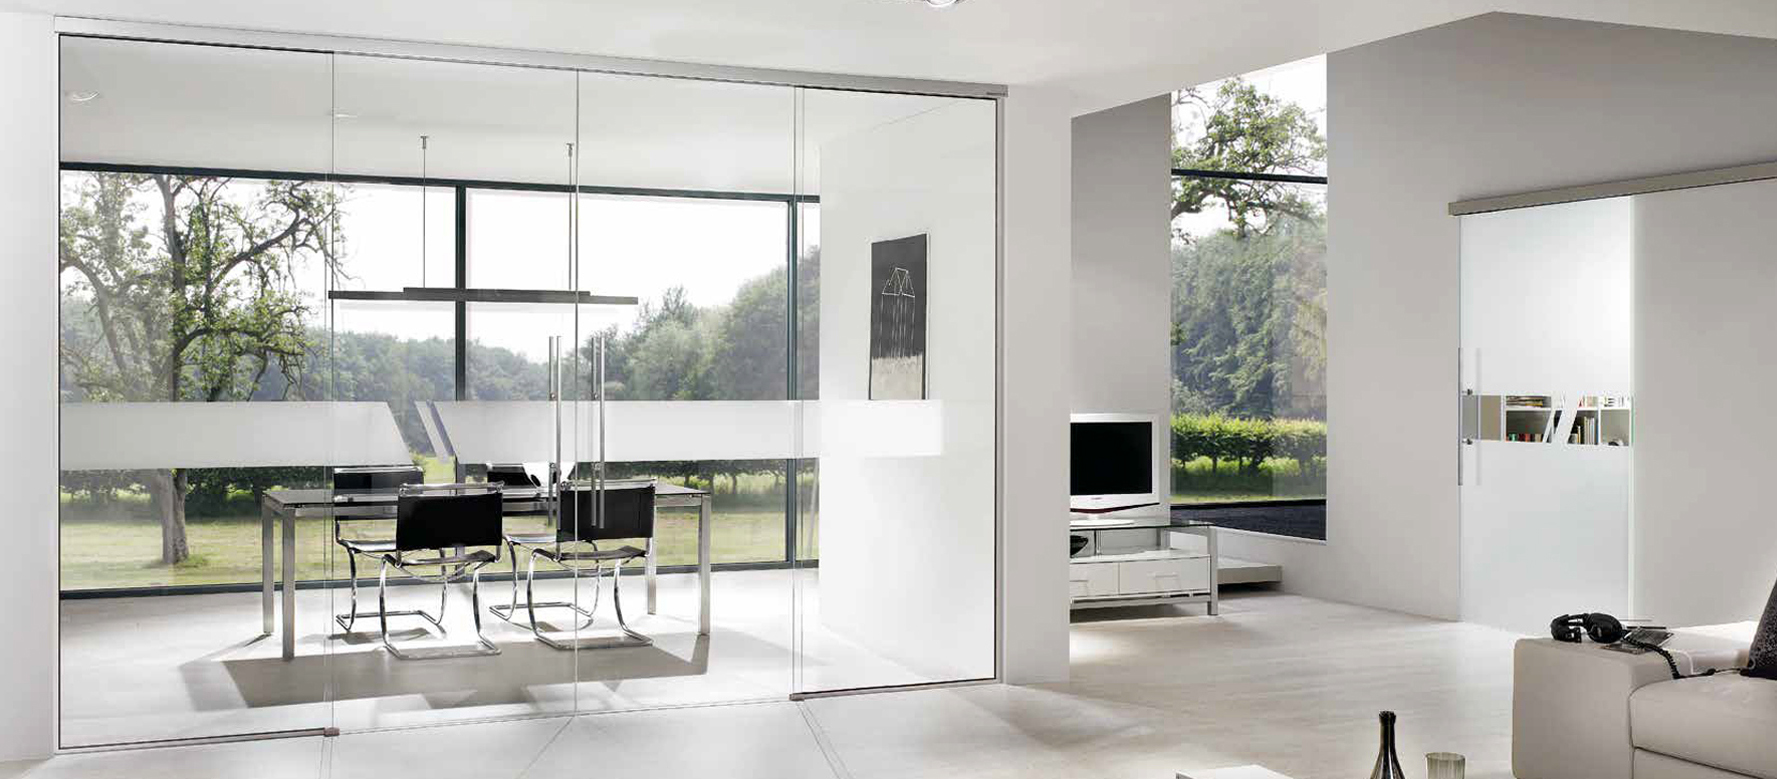 Sliding Glass Doors Single or Wall Partition - Aero Glass Door Design